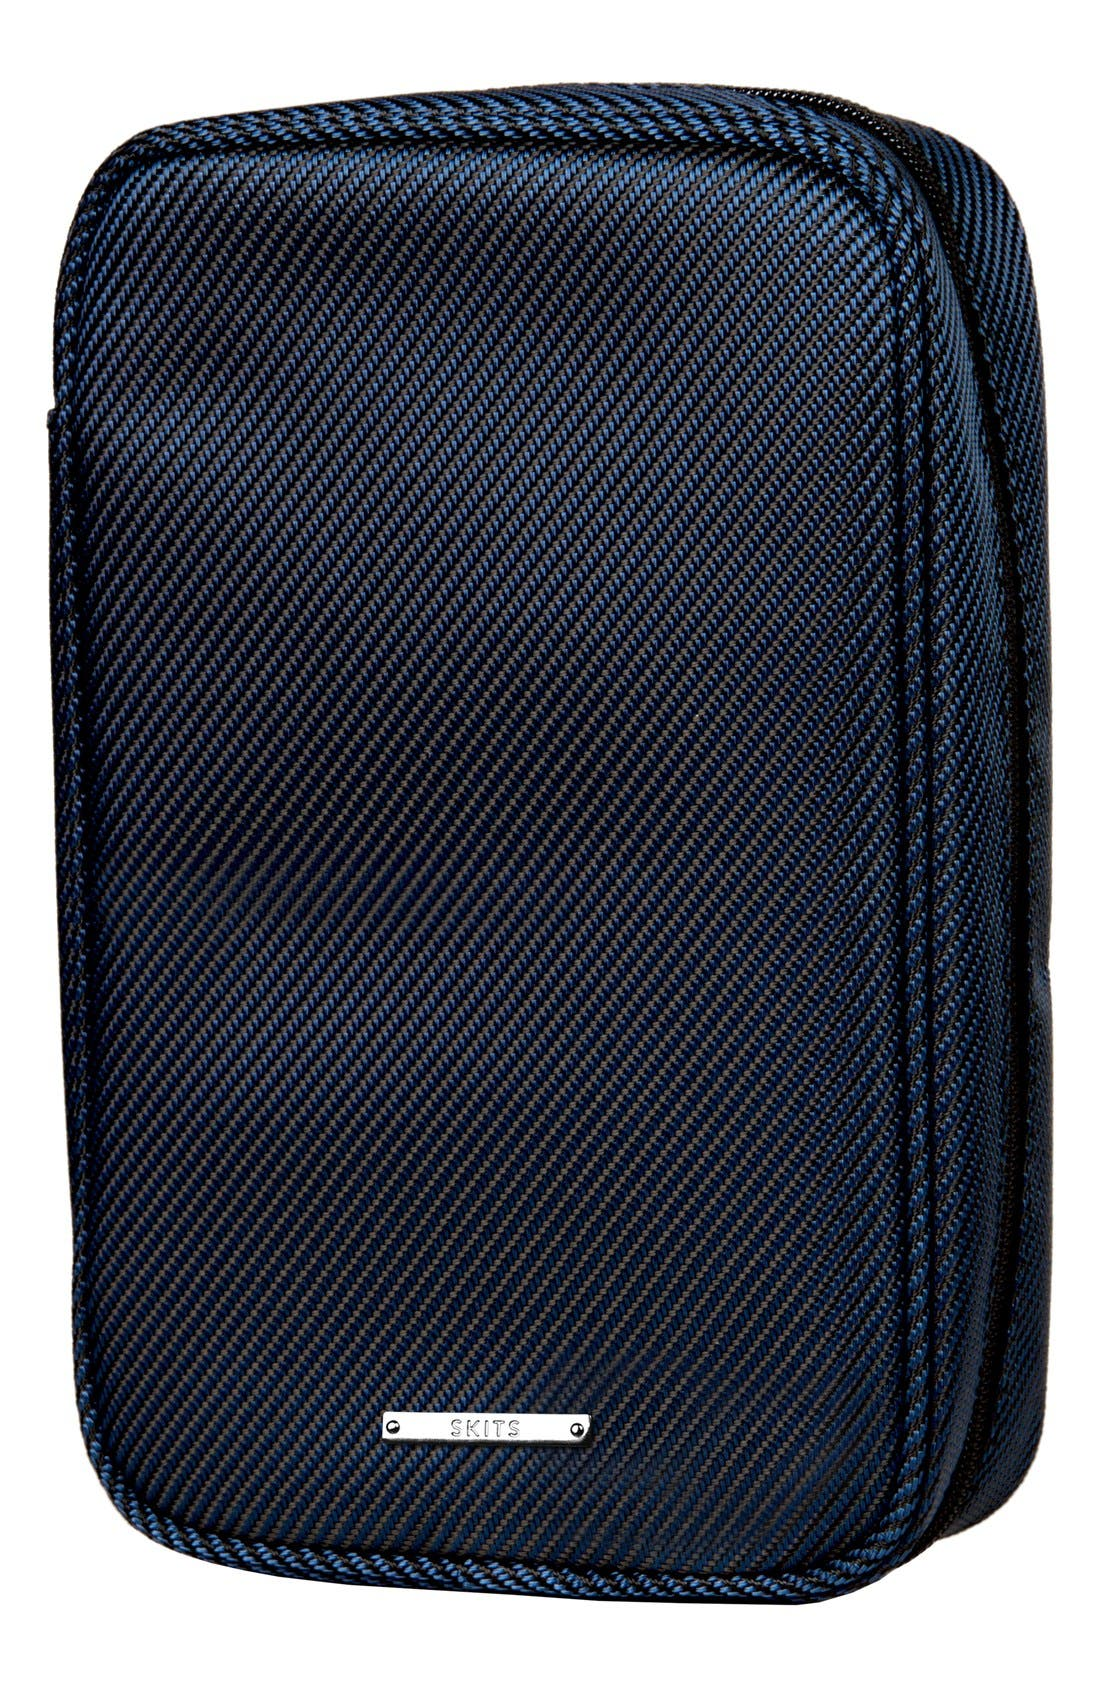 SKITS Geek - Carbon Stripe Tech Case